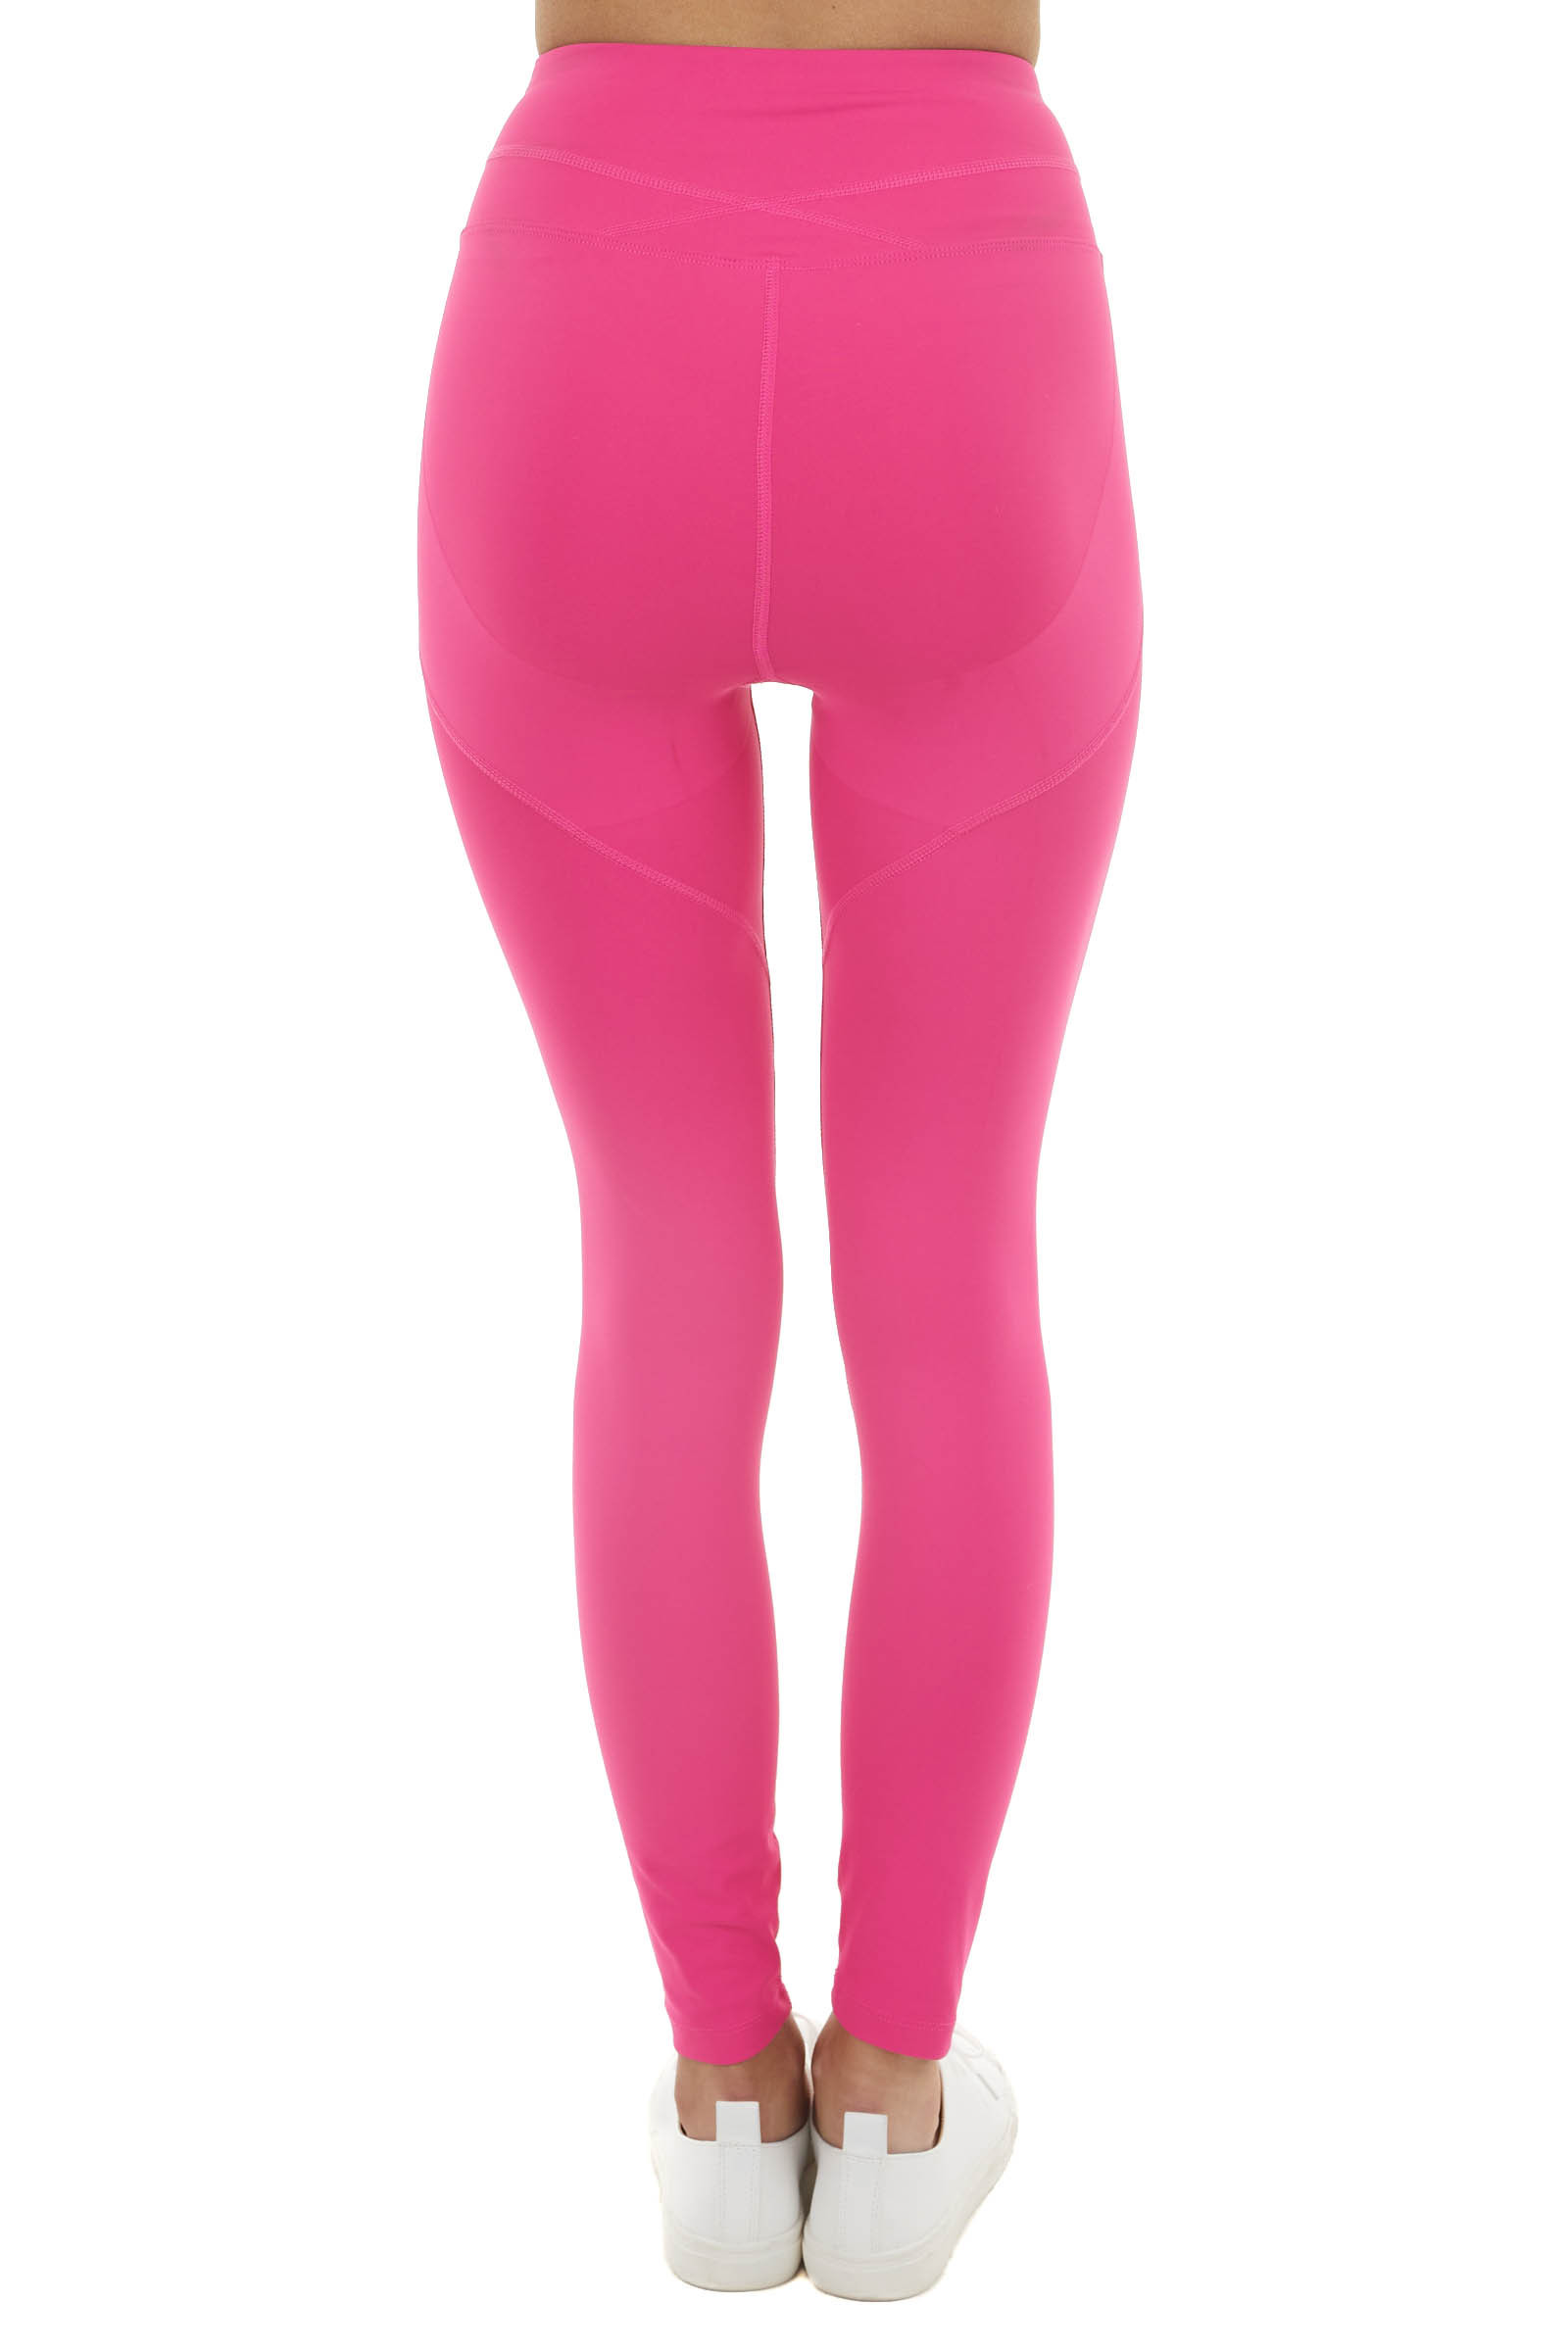 Hot Pink High Waisted Stretchy Leggings with Elastic Waist